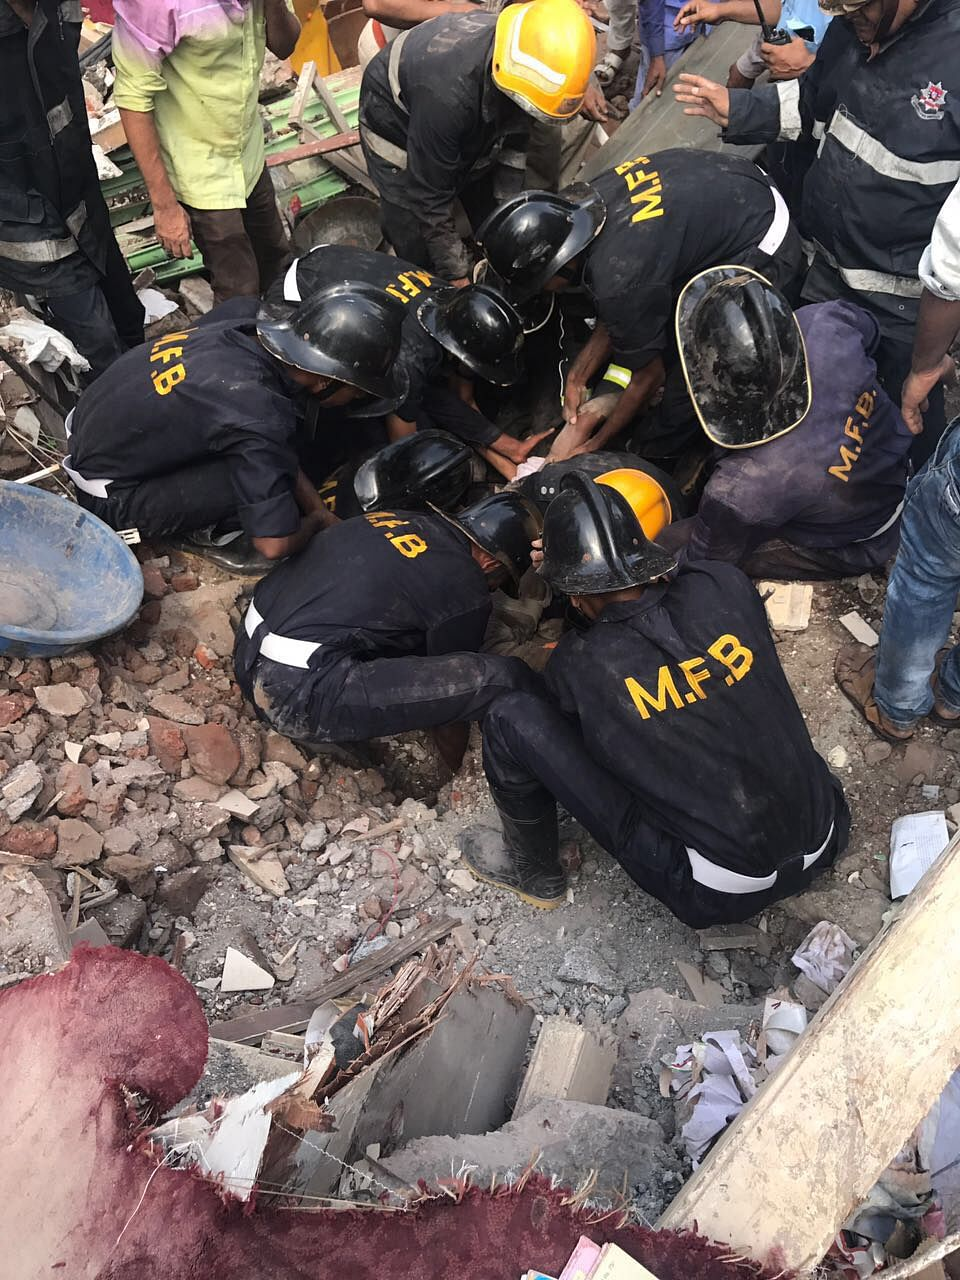 Rescue operations underway at the site of the building collapse.